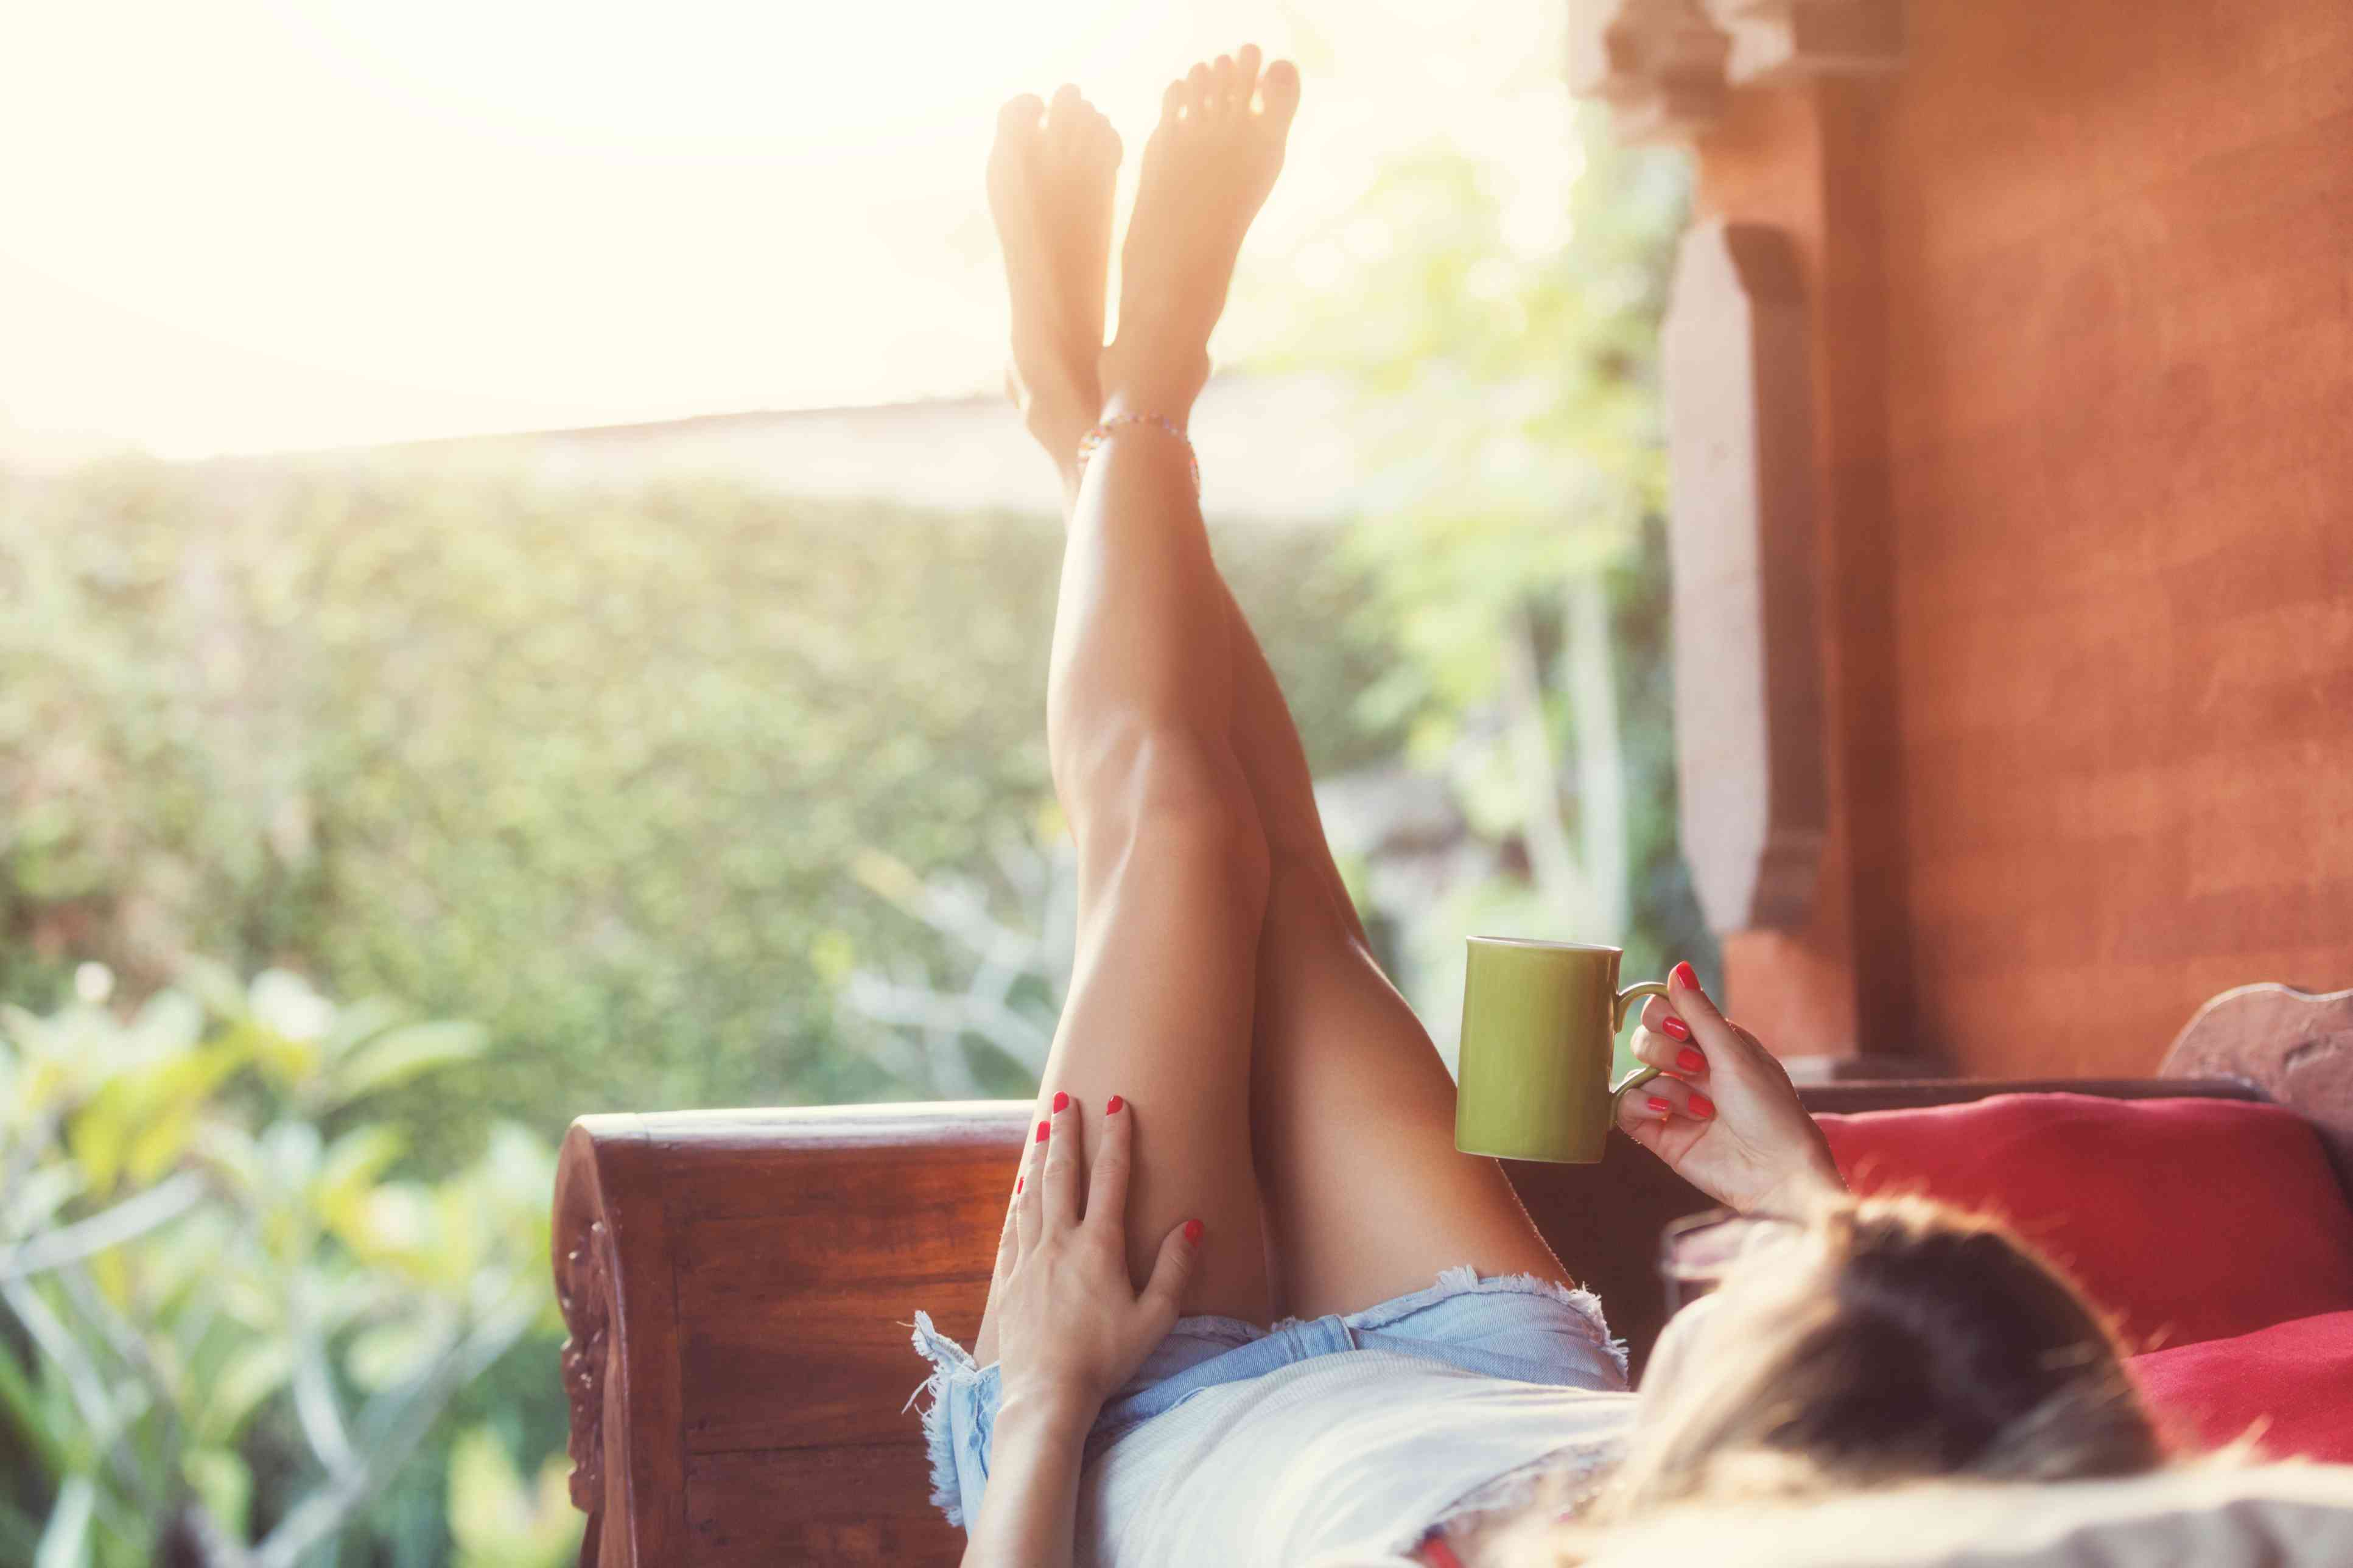 Woman drinking coffee and enjoying the morning sunlight in garden